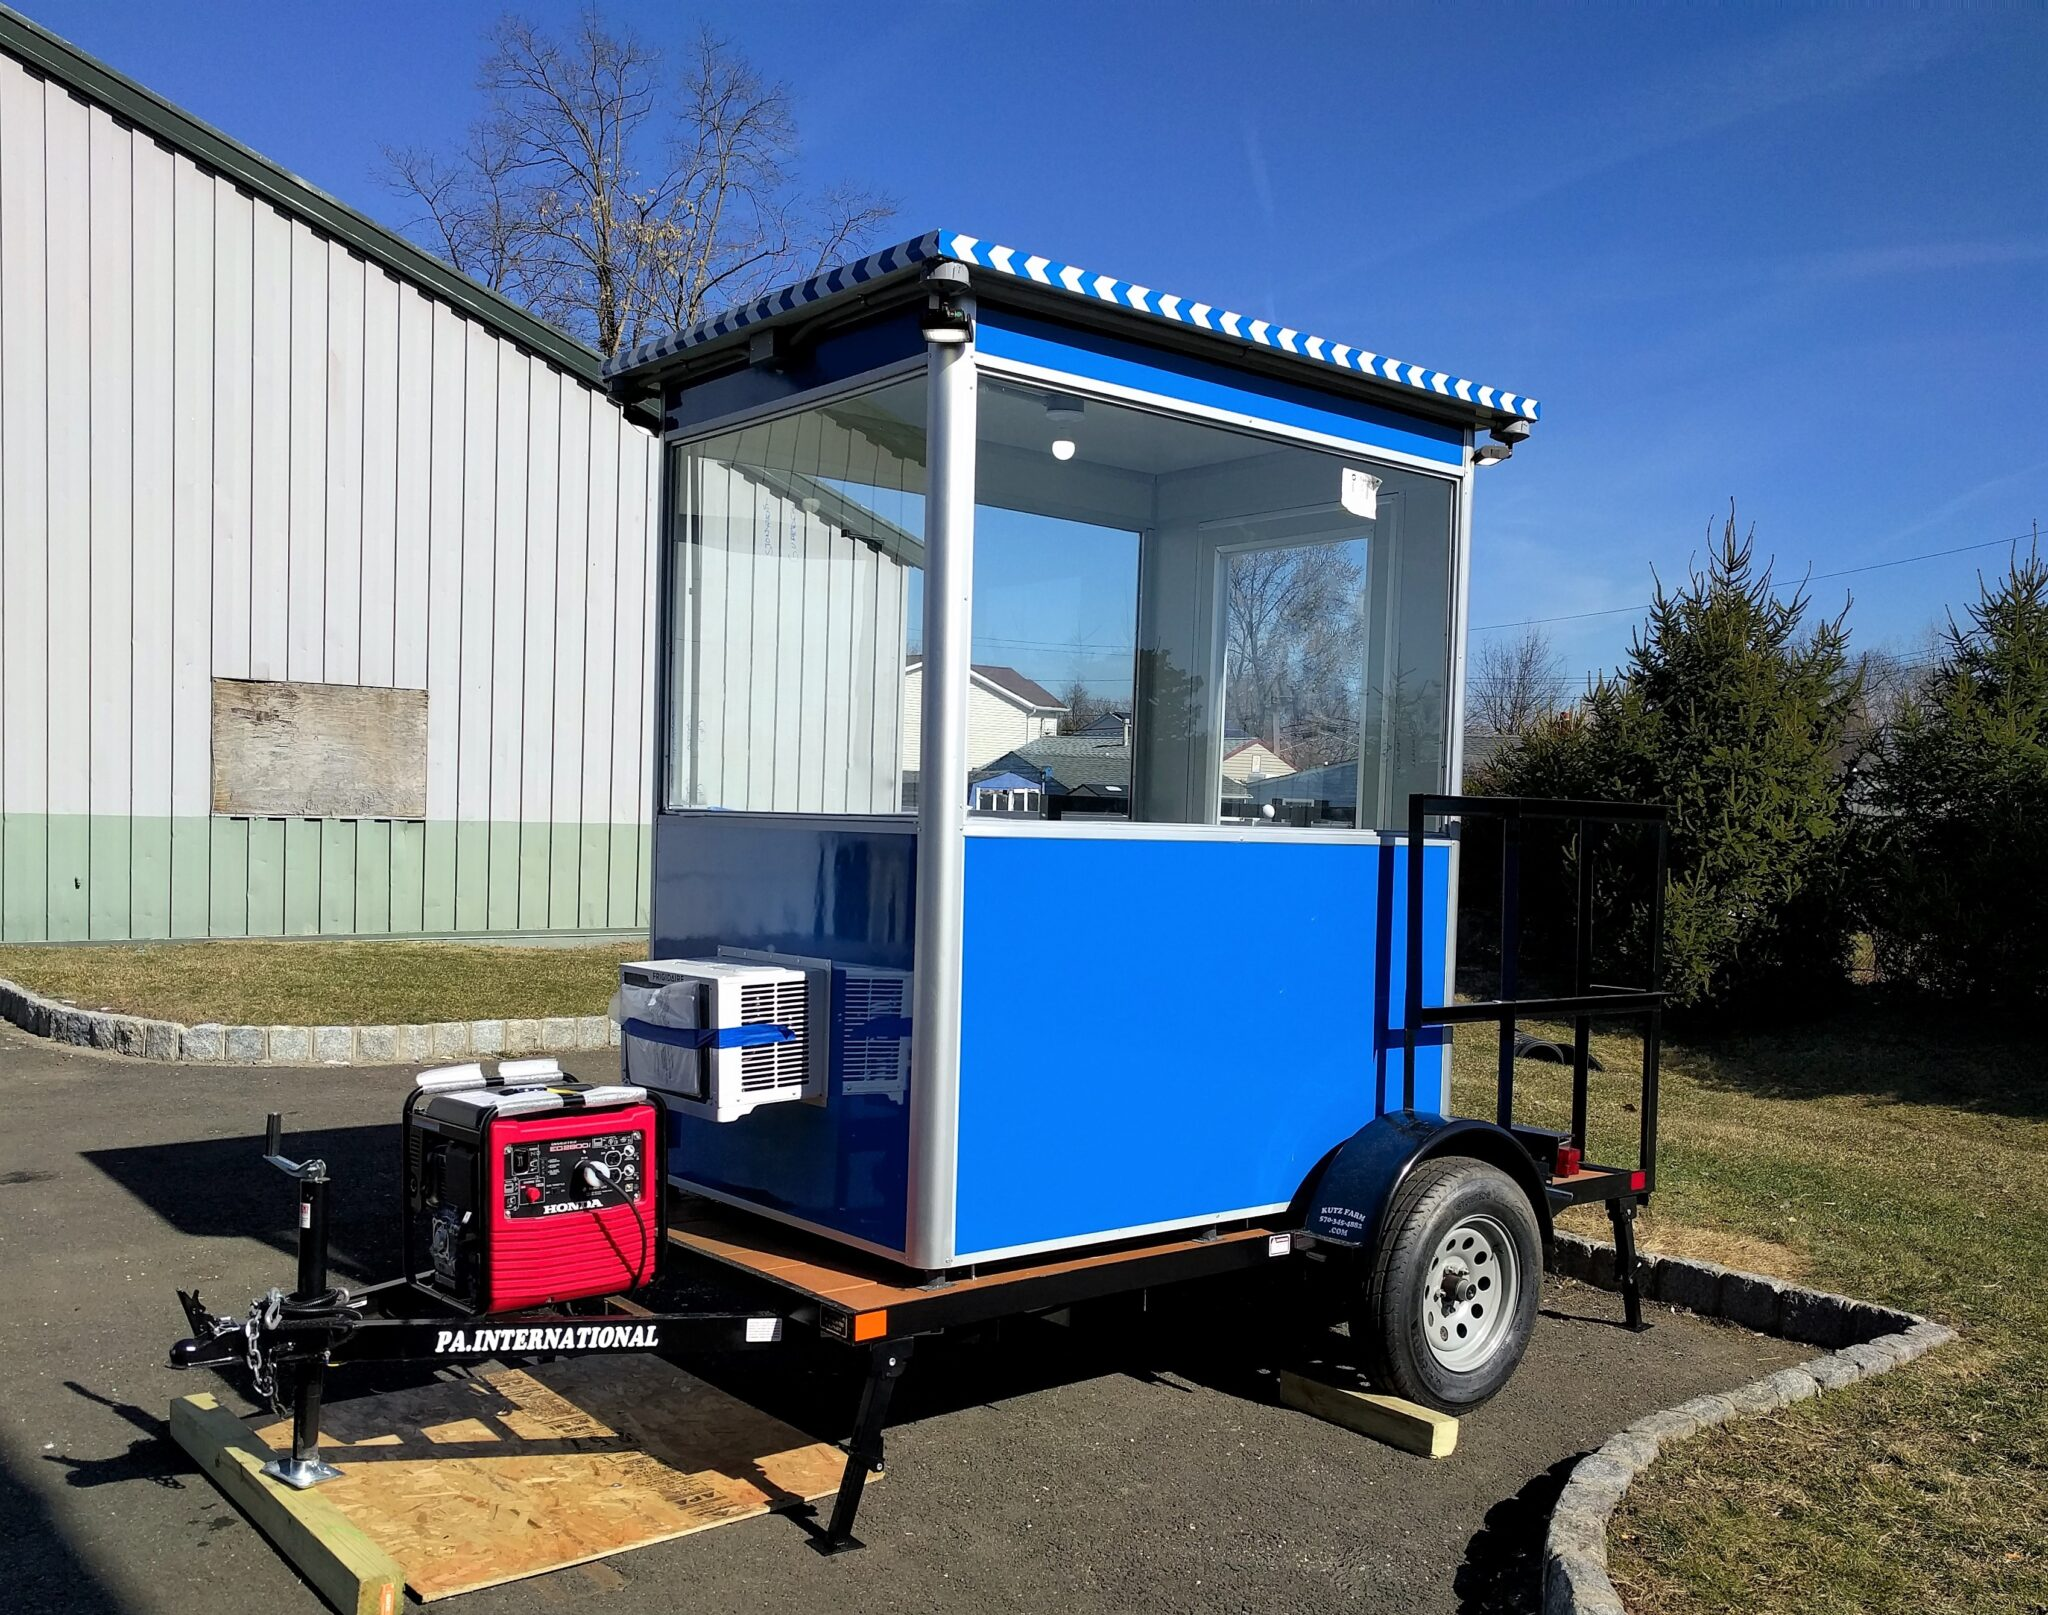 4x6 Booth with Add-On Features Generator and Built-in AC